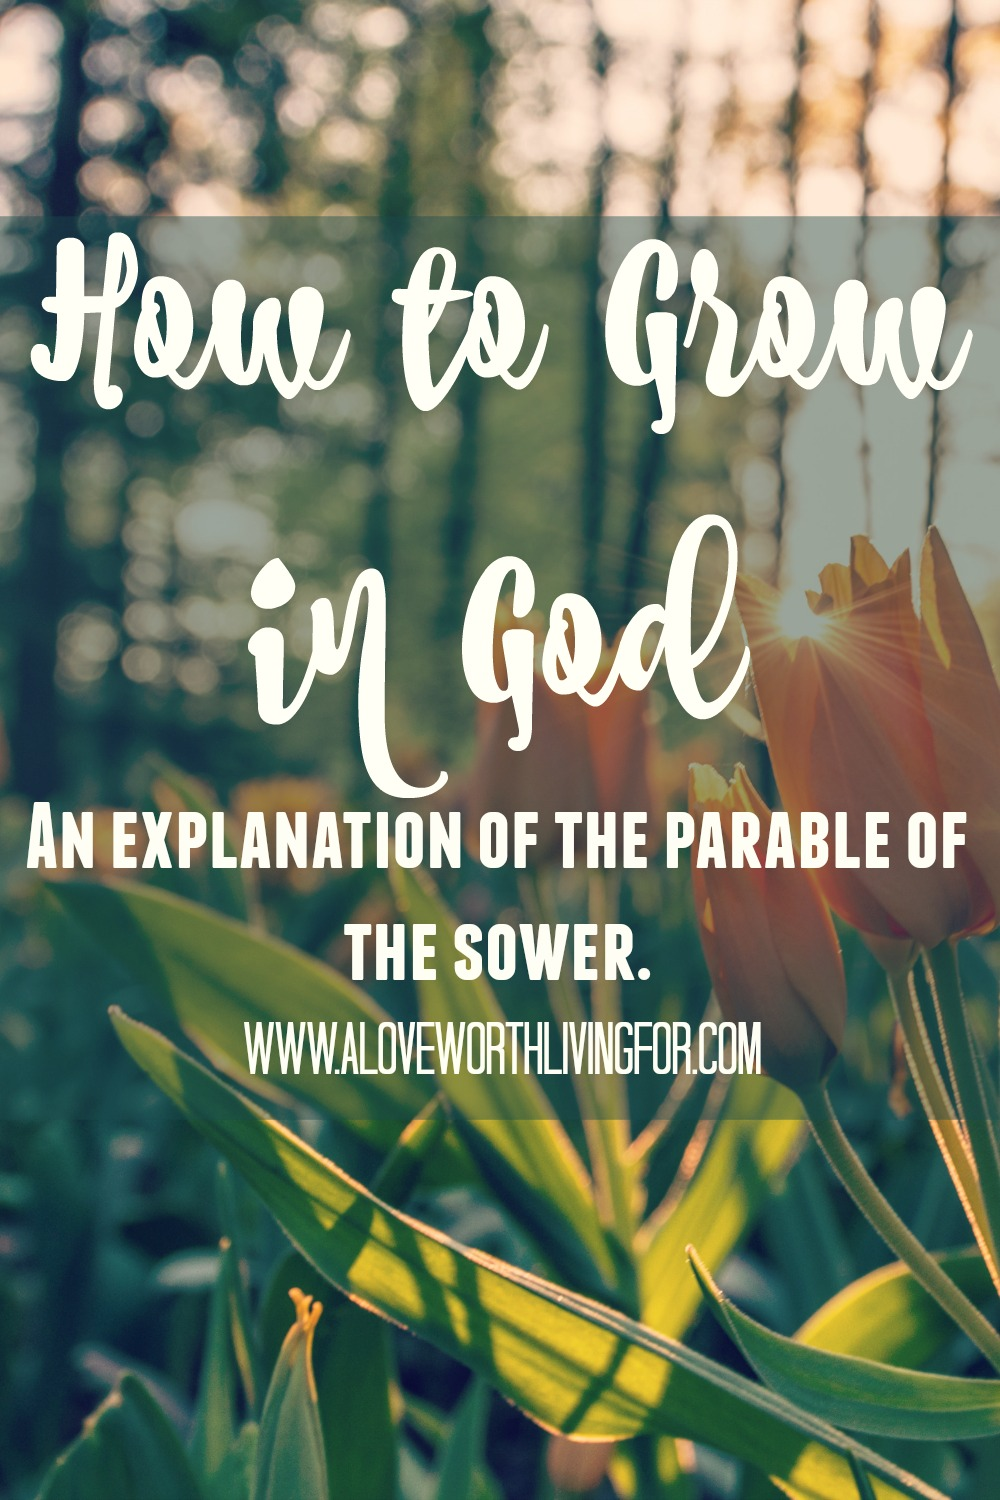 We were created to be in community with God and others. How can we grow in our relationship with God? How can we mature in our faith and help others to the best of our ability? The answer is in the Parable of the Sower.